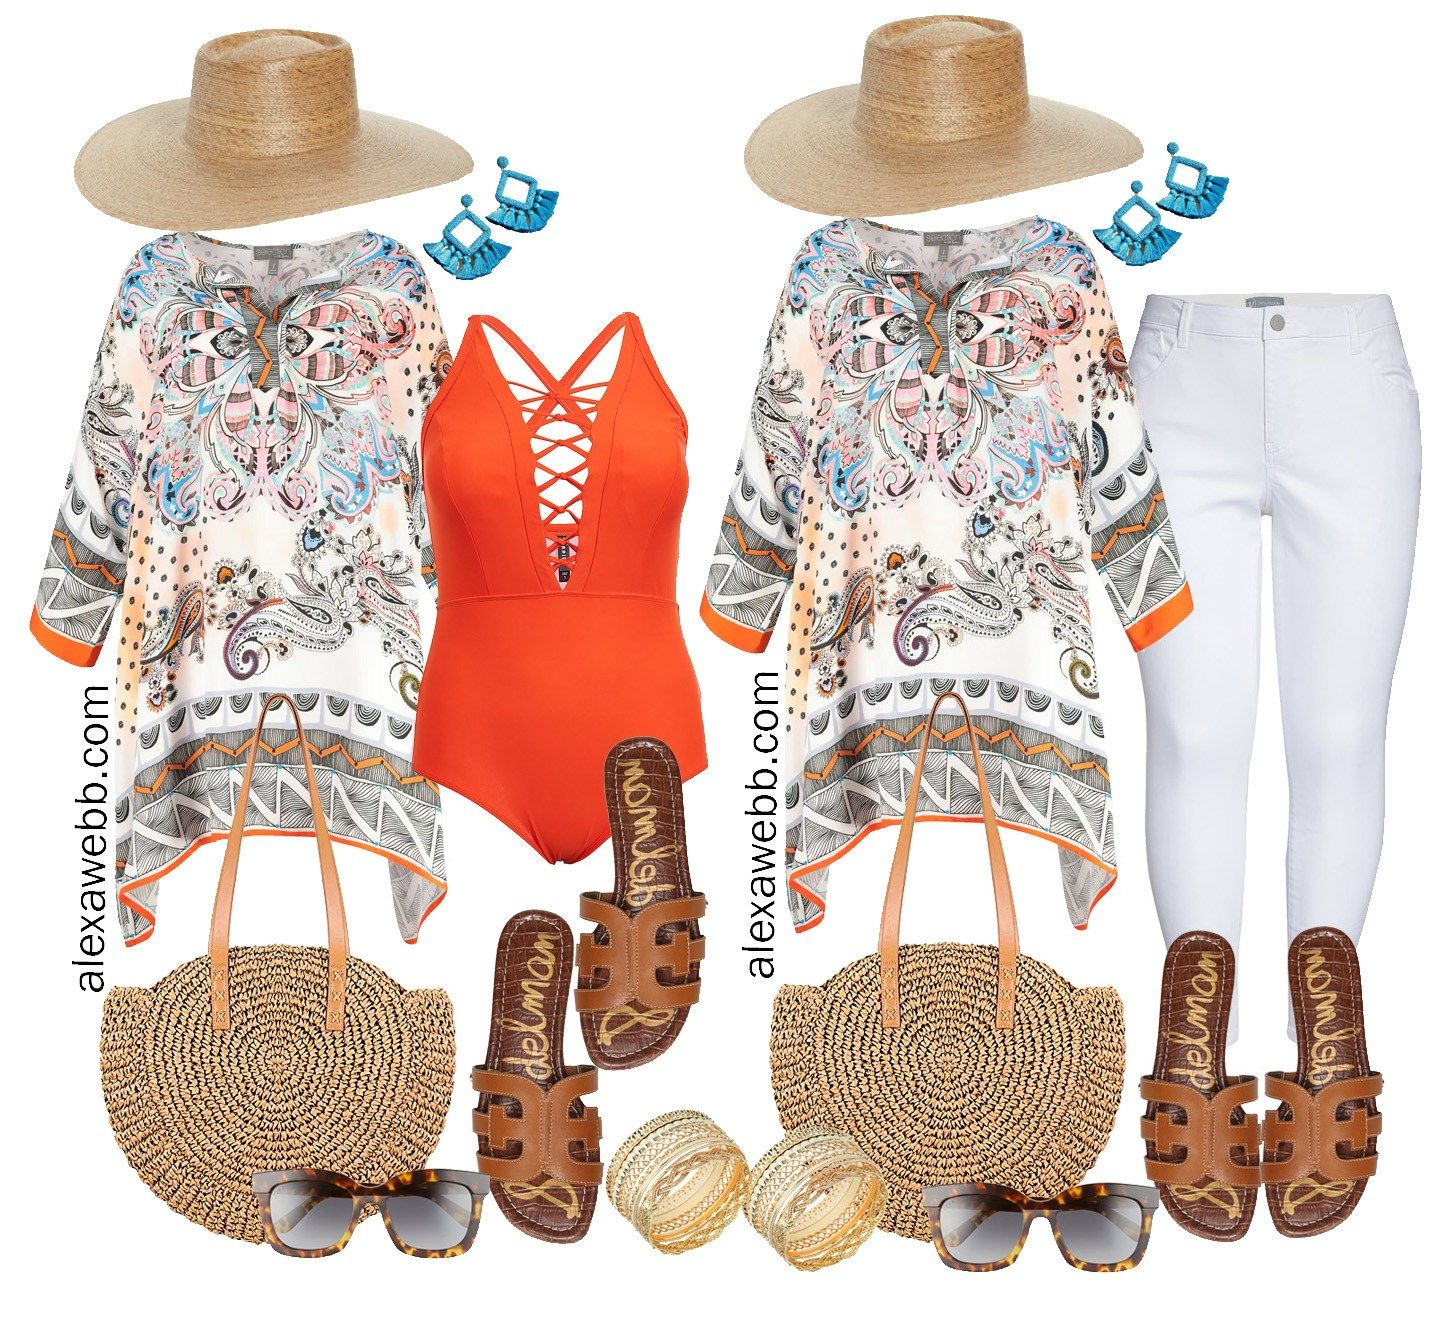 Two plus size beach vacation outfits.  Both striking with this bright tunic, which can